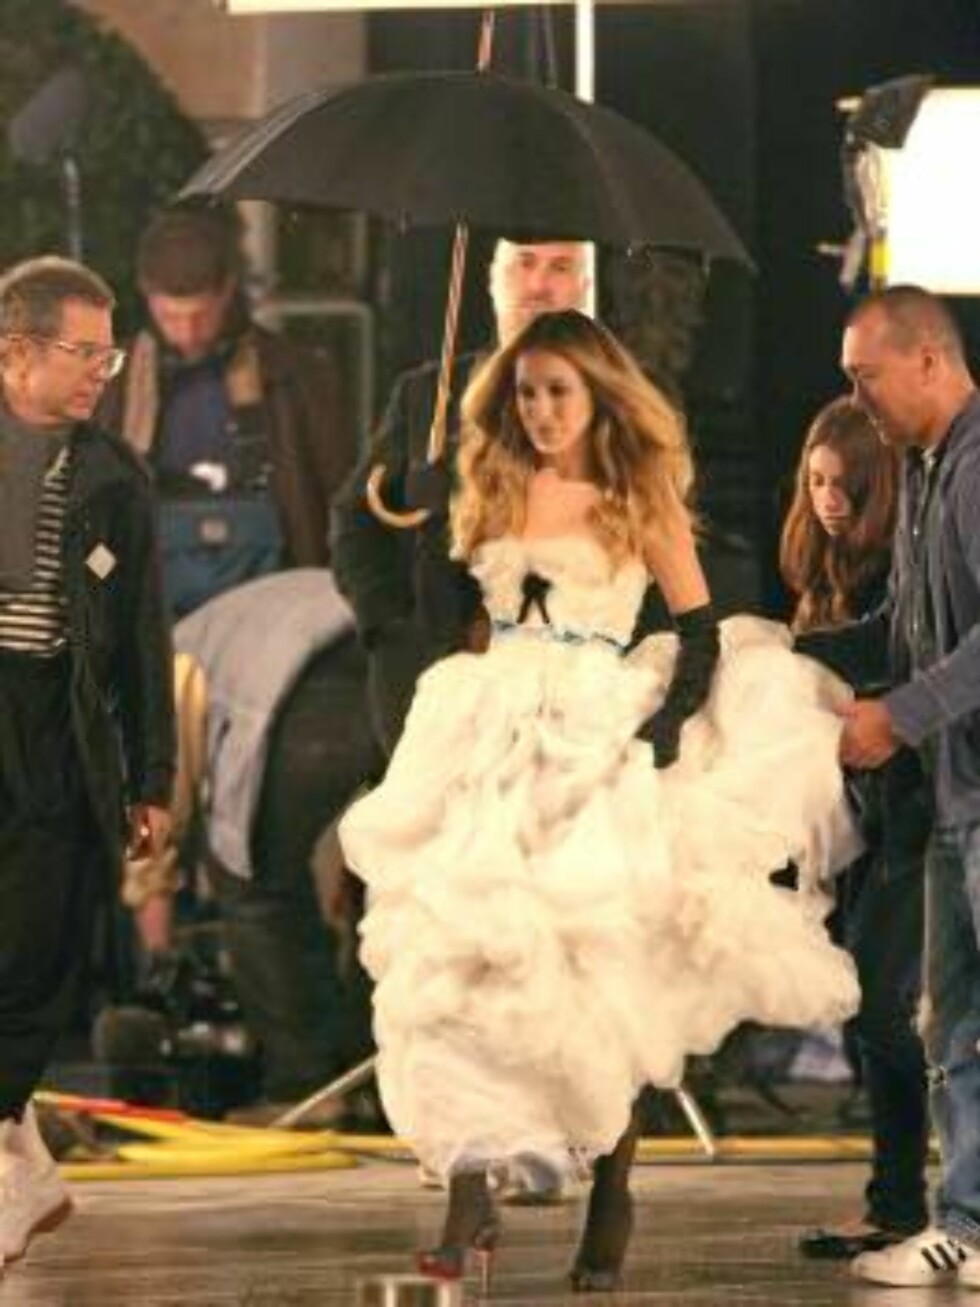 US actress Sarah Jessica Parker filming an ad for her new perfume, Place Vendome, in Paris France, on September 28, 2006. The advertising is directed by Jean-Paul Goude.   Photo by ABACAPRESS Code:4001/106603  COPYRIGHT STELLA PICTURES Foto: Stella Pictures